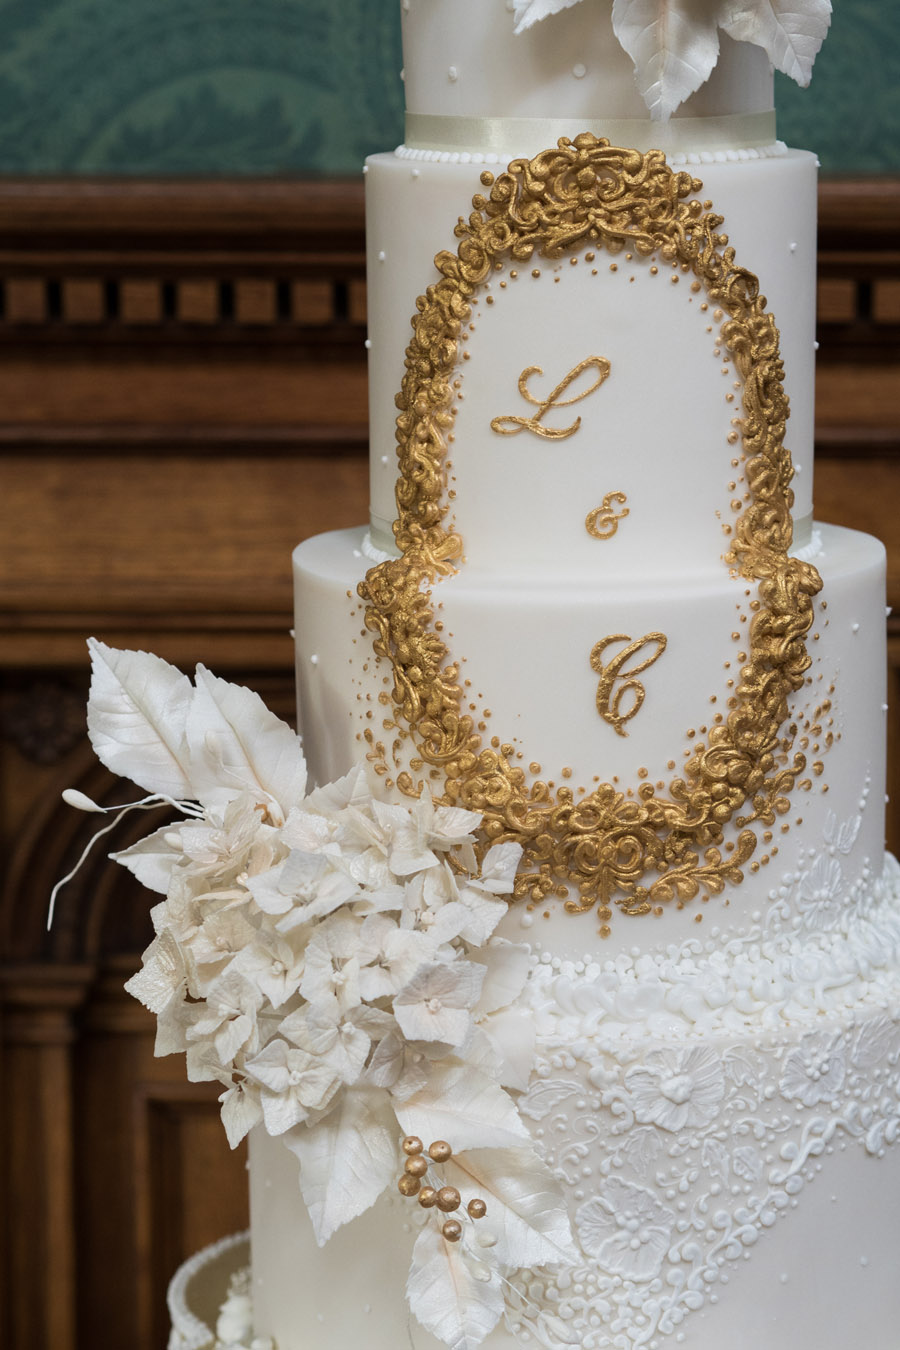 Beautiful wedding cakes by The Frostery - trends and ideas for 2019 (7)